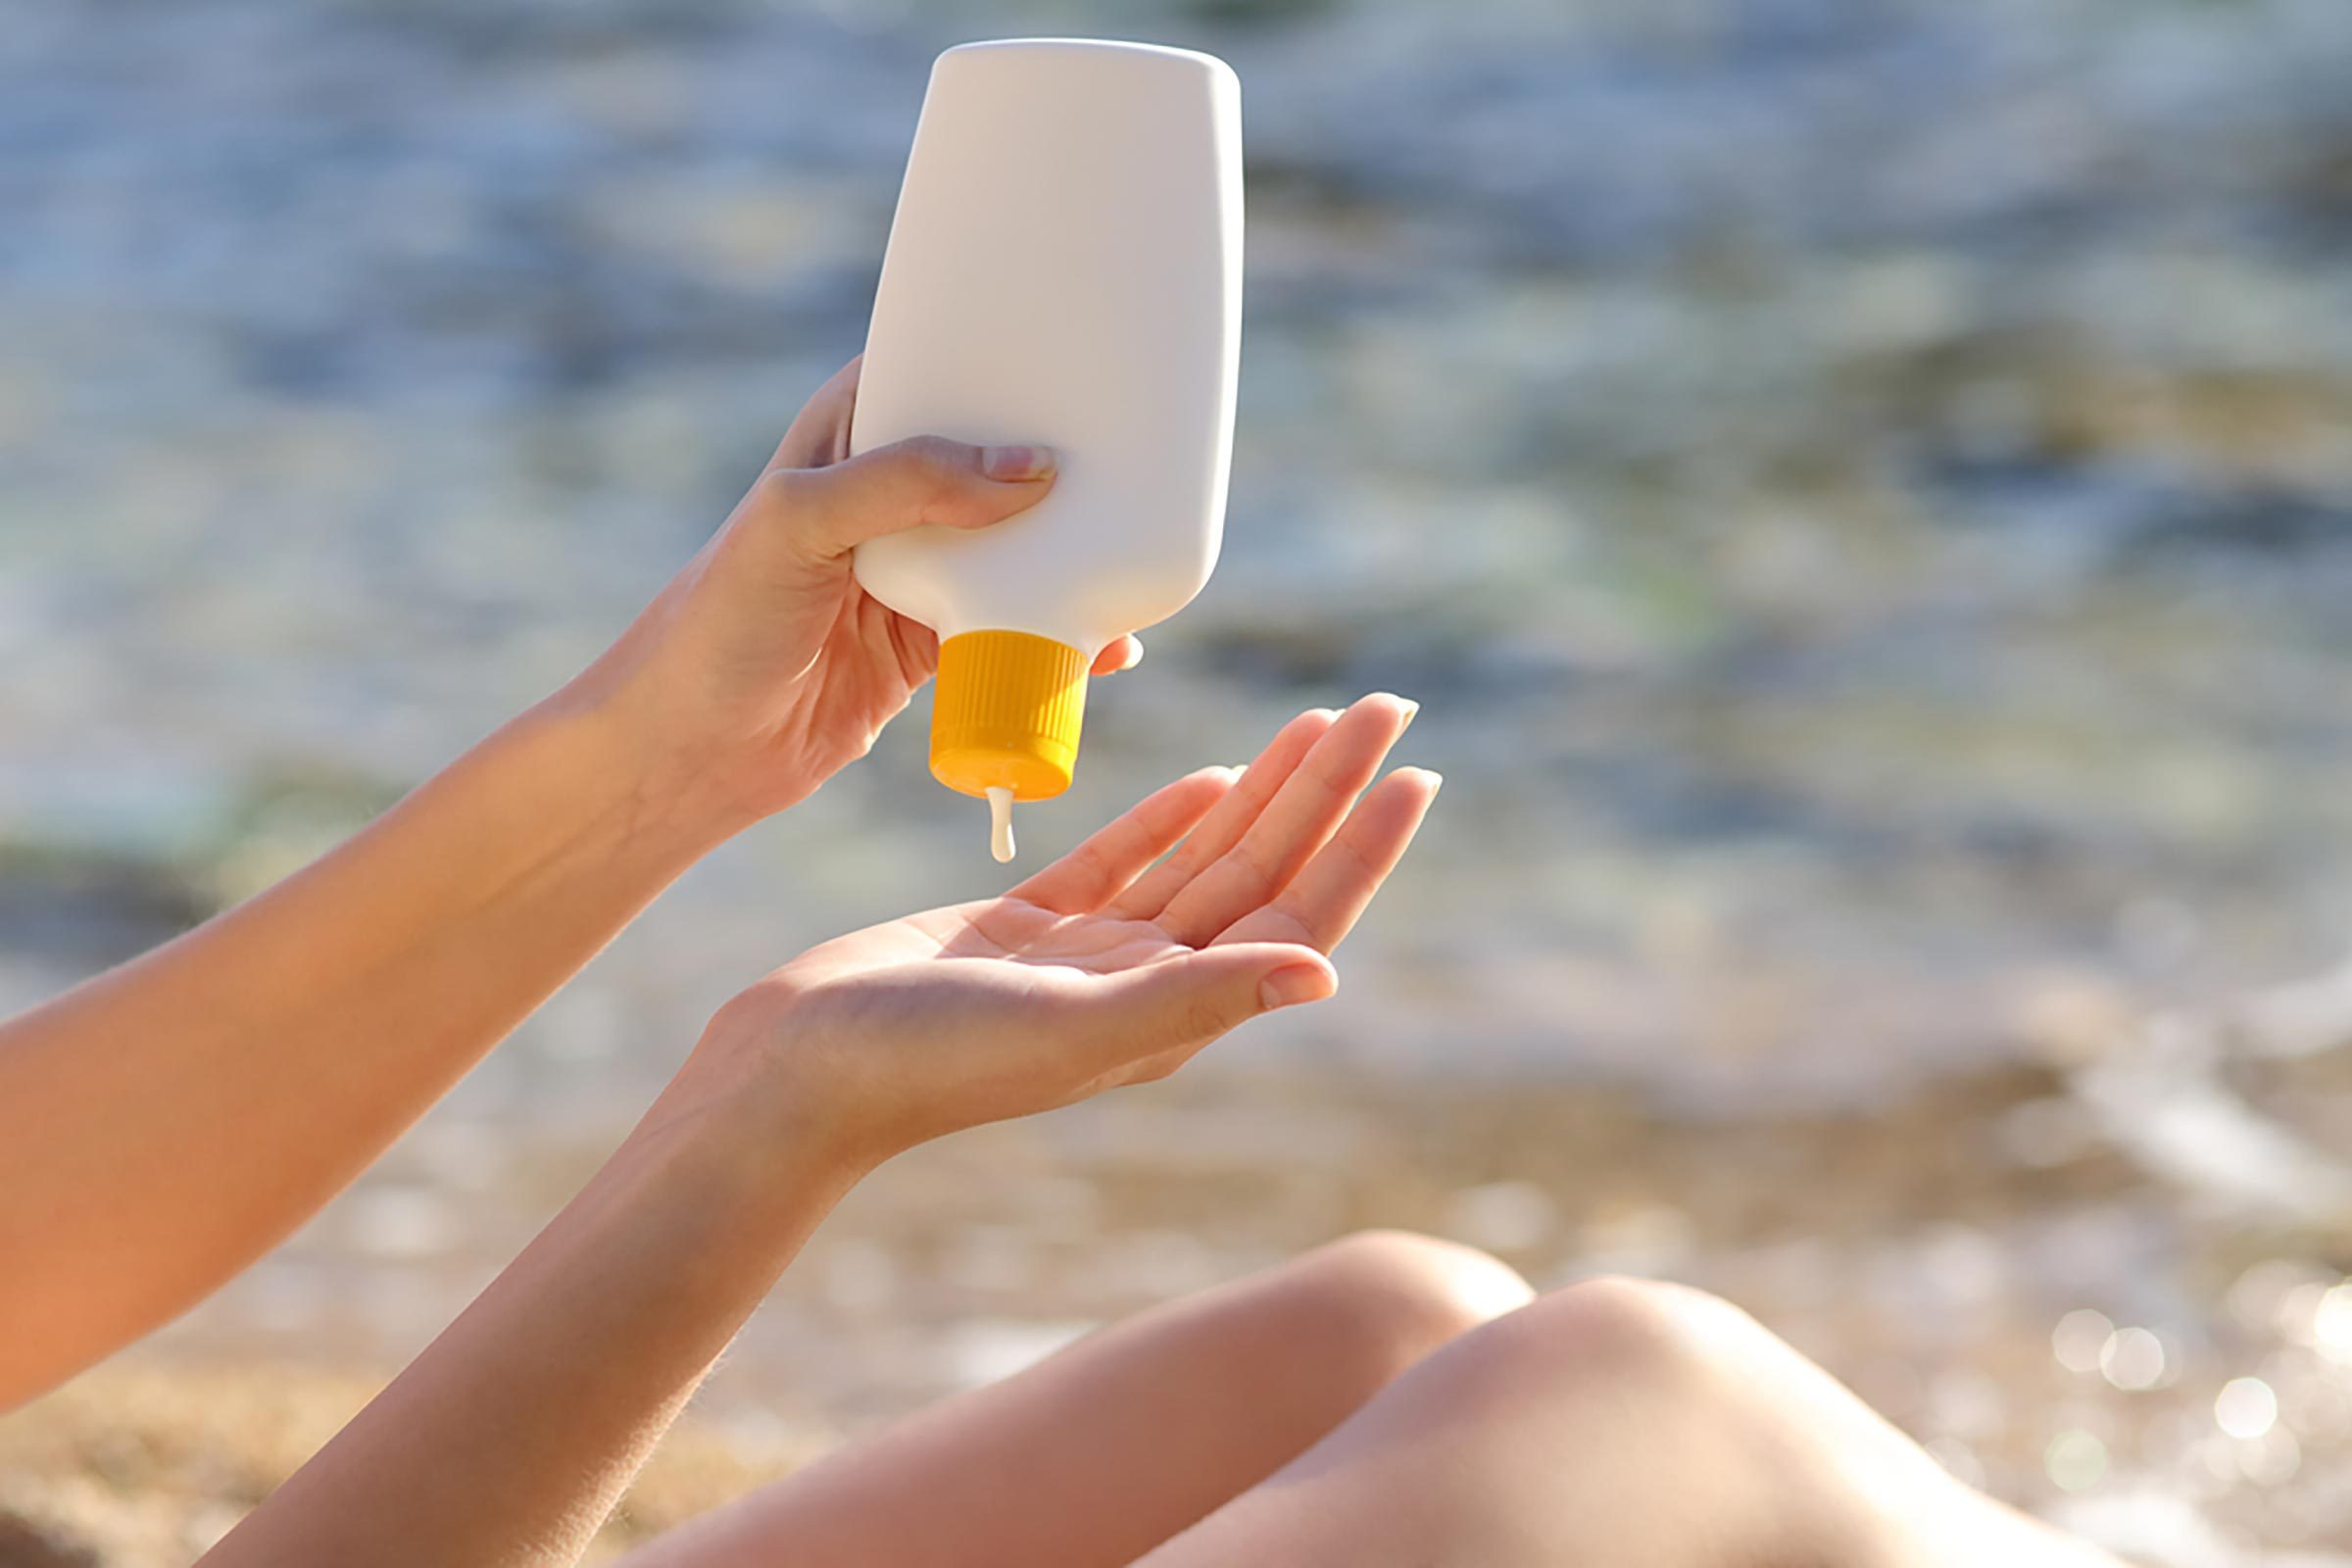 woman squeezing sunscreen into hand at the beach